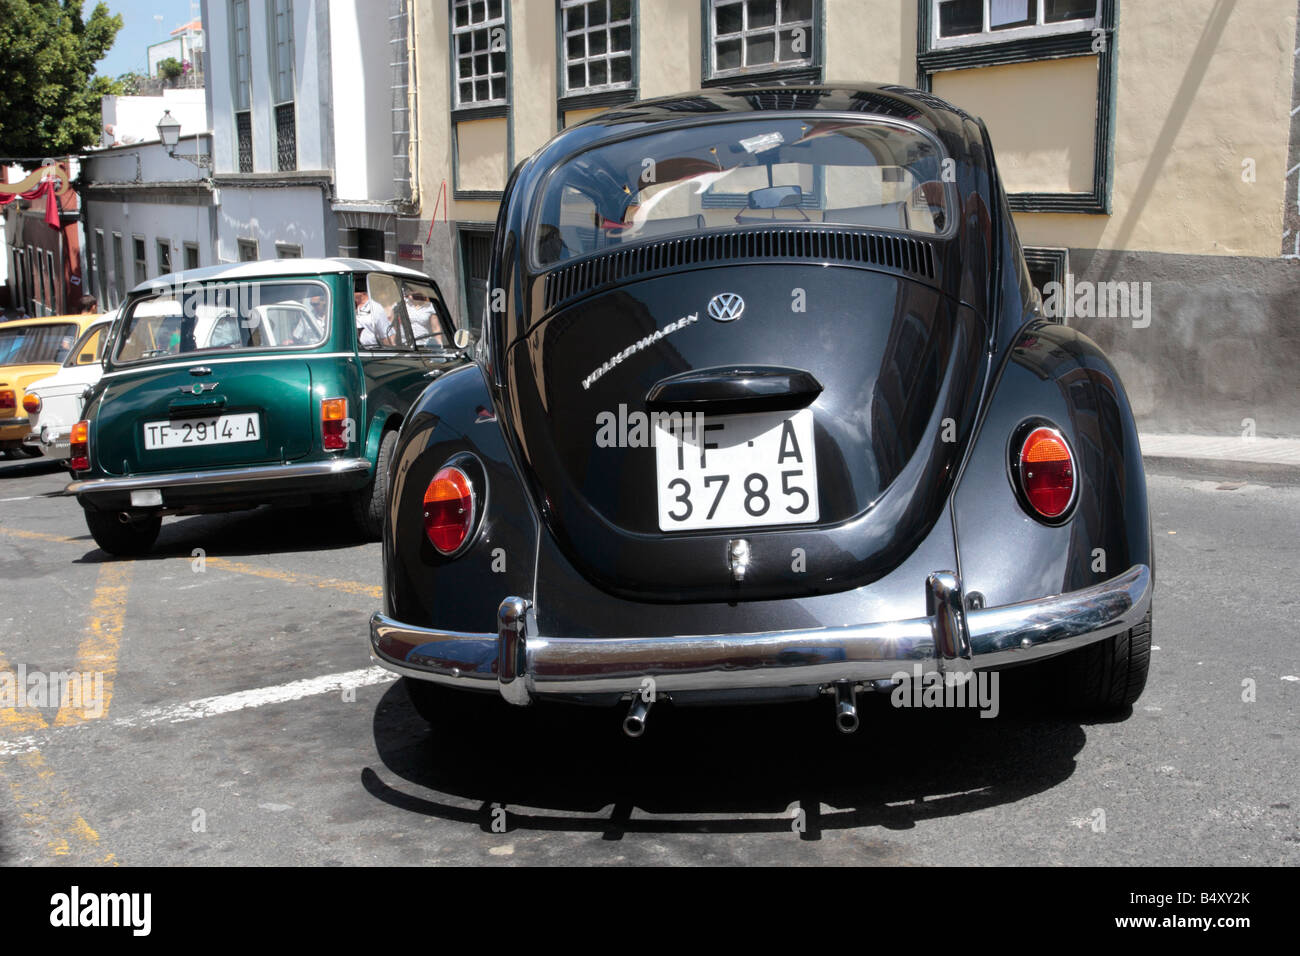 Covering Mini Cooper >> Black VW Beetle parked next to a Mini Cooper on a hill at a vintage Stock Photo: 20260987 - Alamy